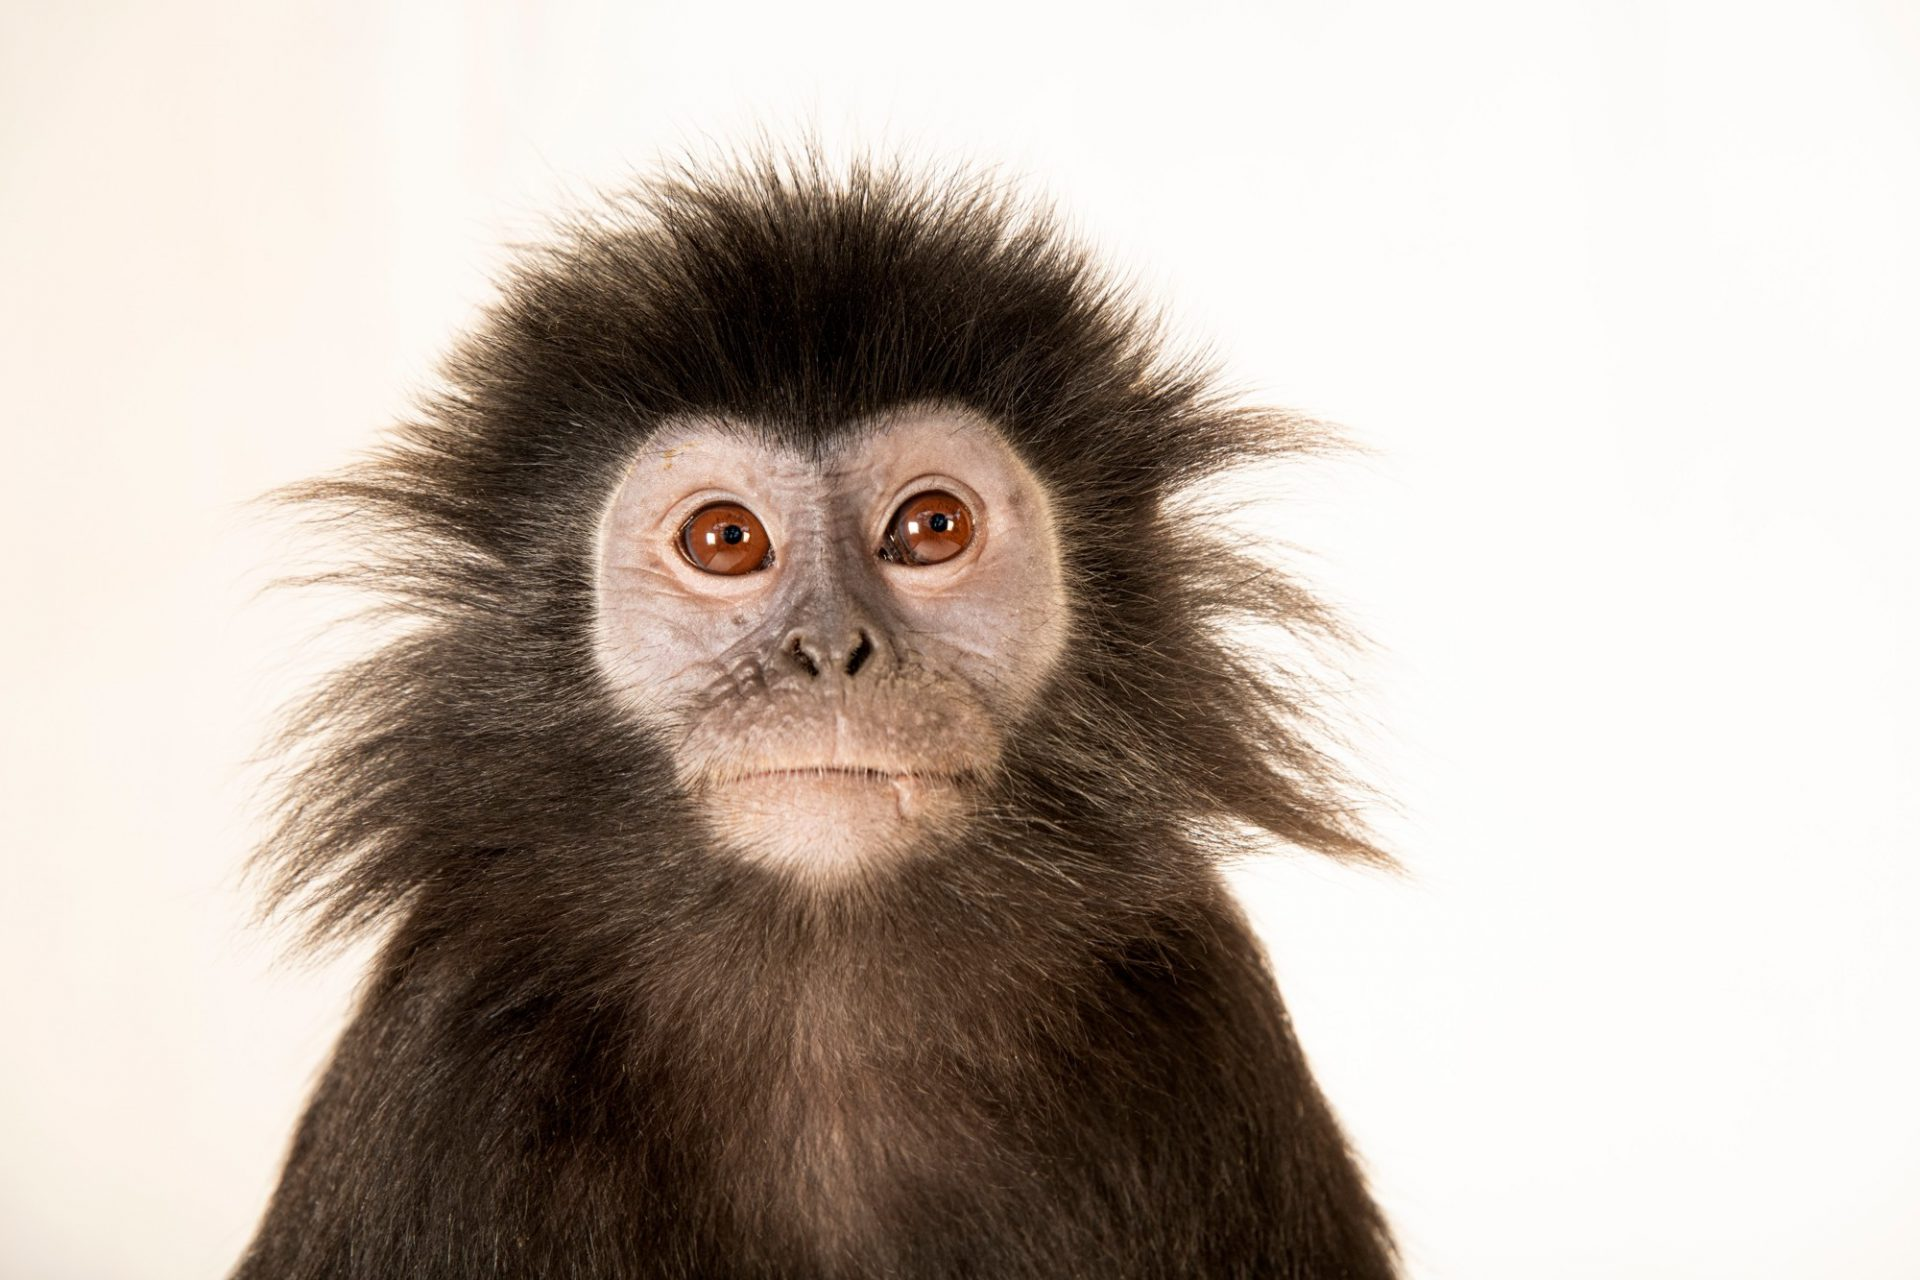 Photo: A Western Javan langur (Trachypithecus auratus mauritius) at Taman Safari in Bogor, West Java, Indonesia.